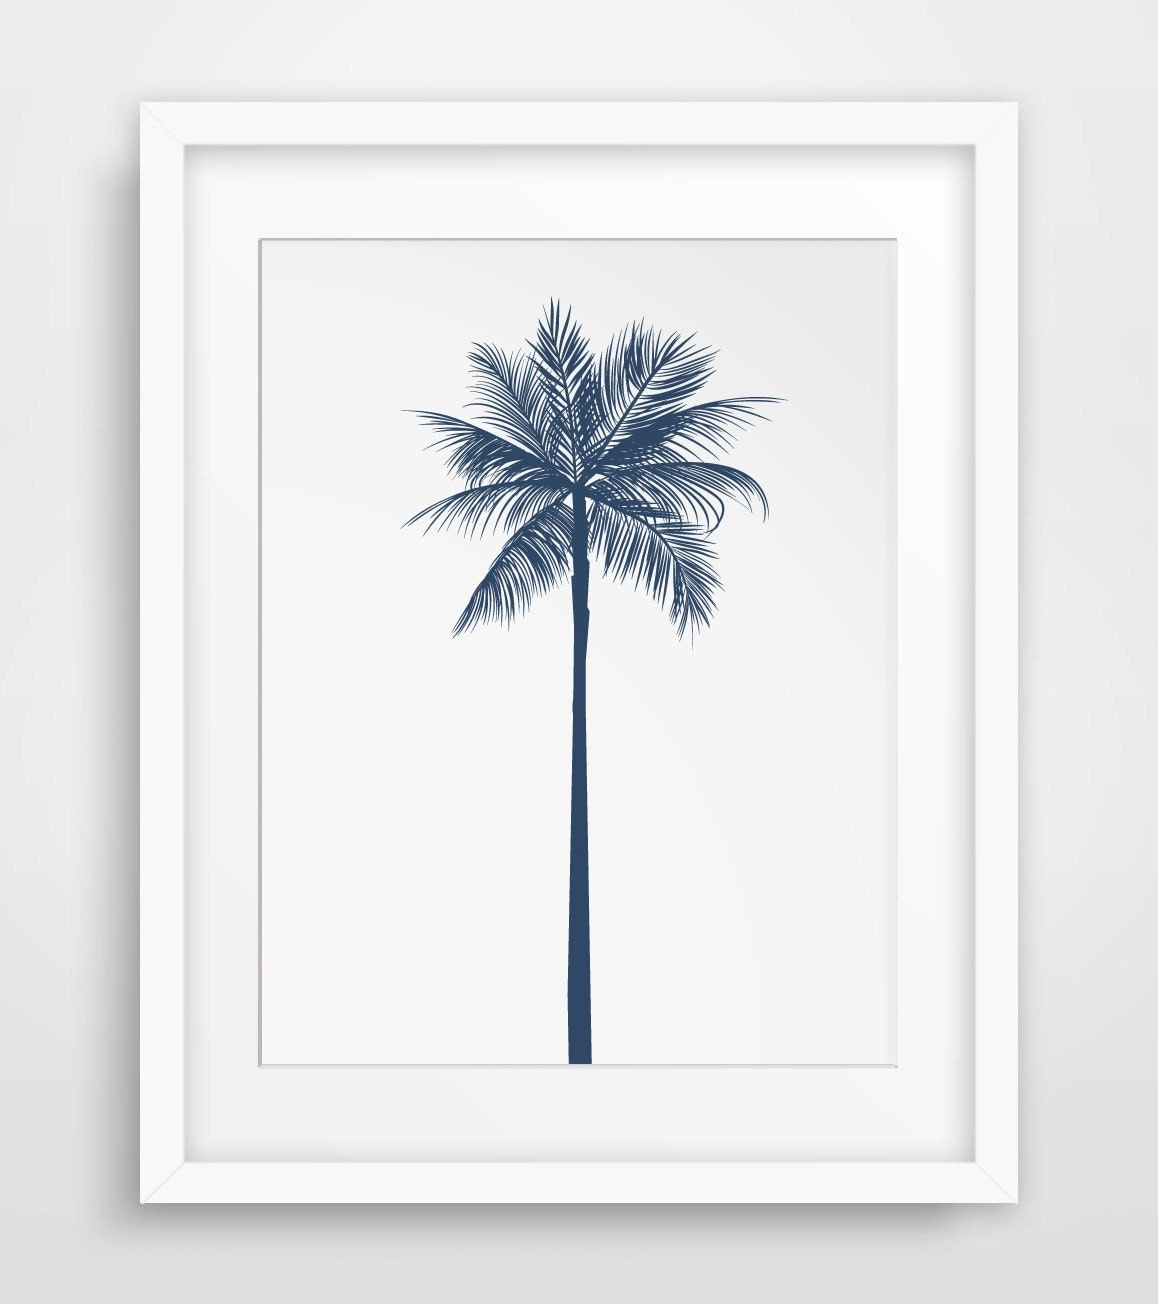 Palm tree decor navy wall decor navy wall print palm for Palm tree decorations for the home